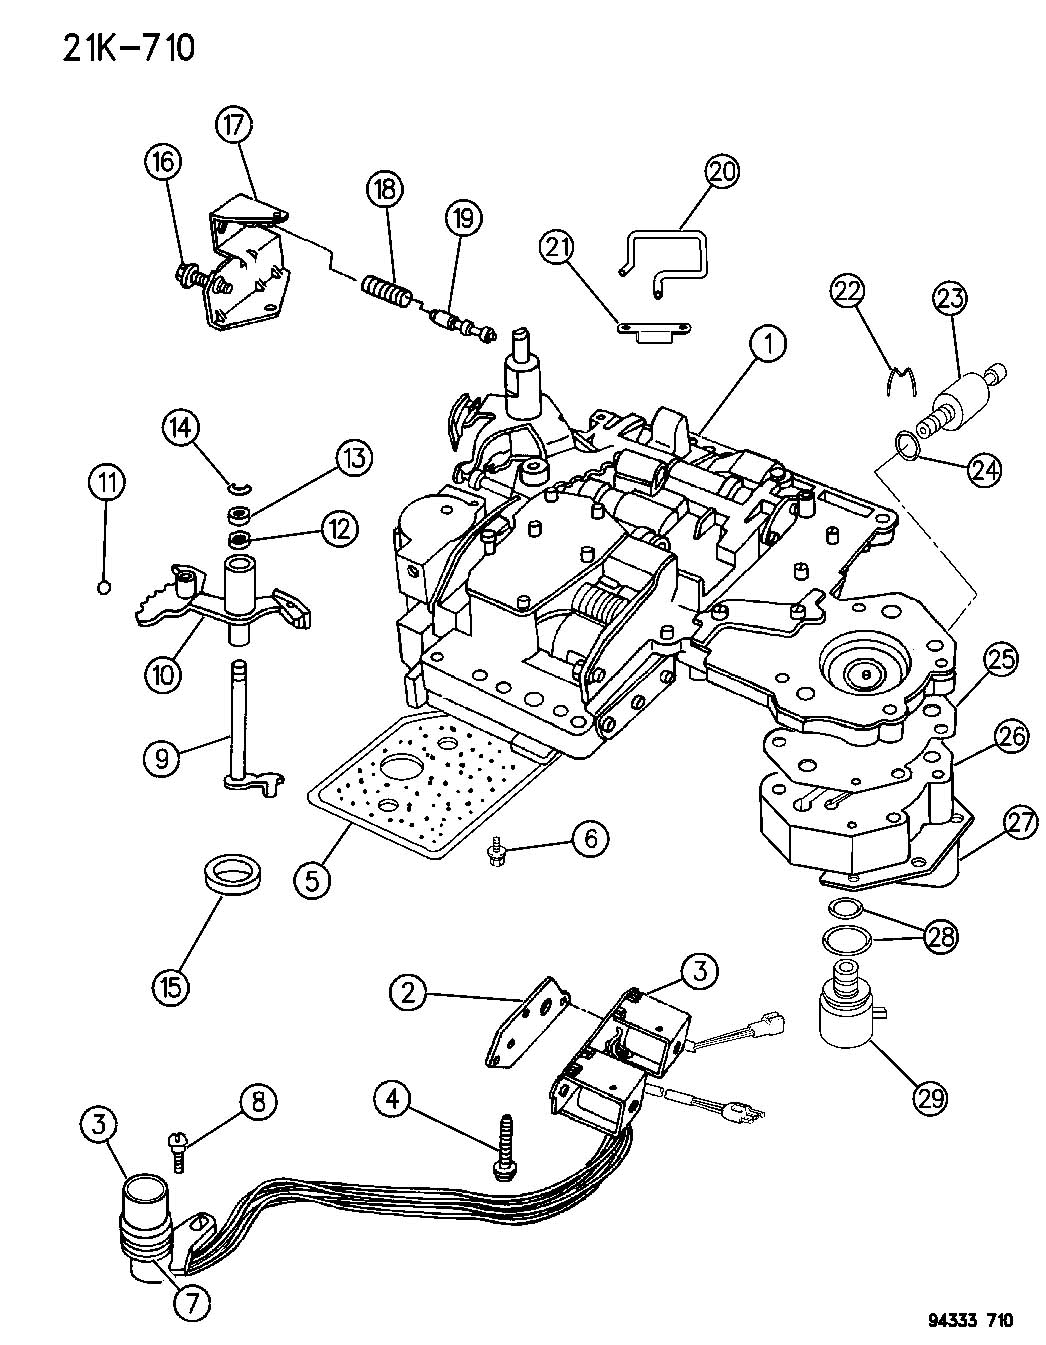 Chrysler 727 Neutral Safety Switch Wiring Diagram Master 44re Transmission 47rh Park B M